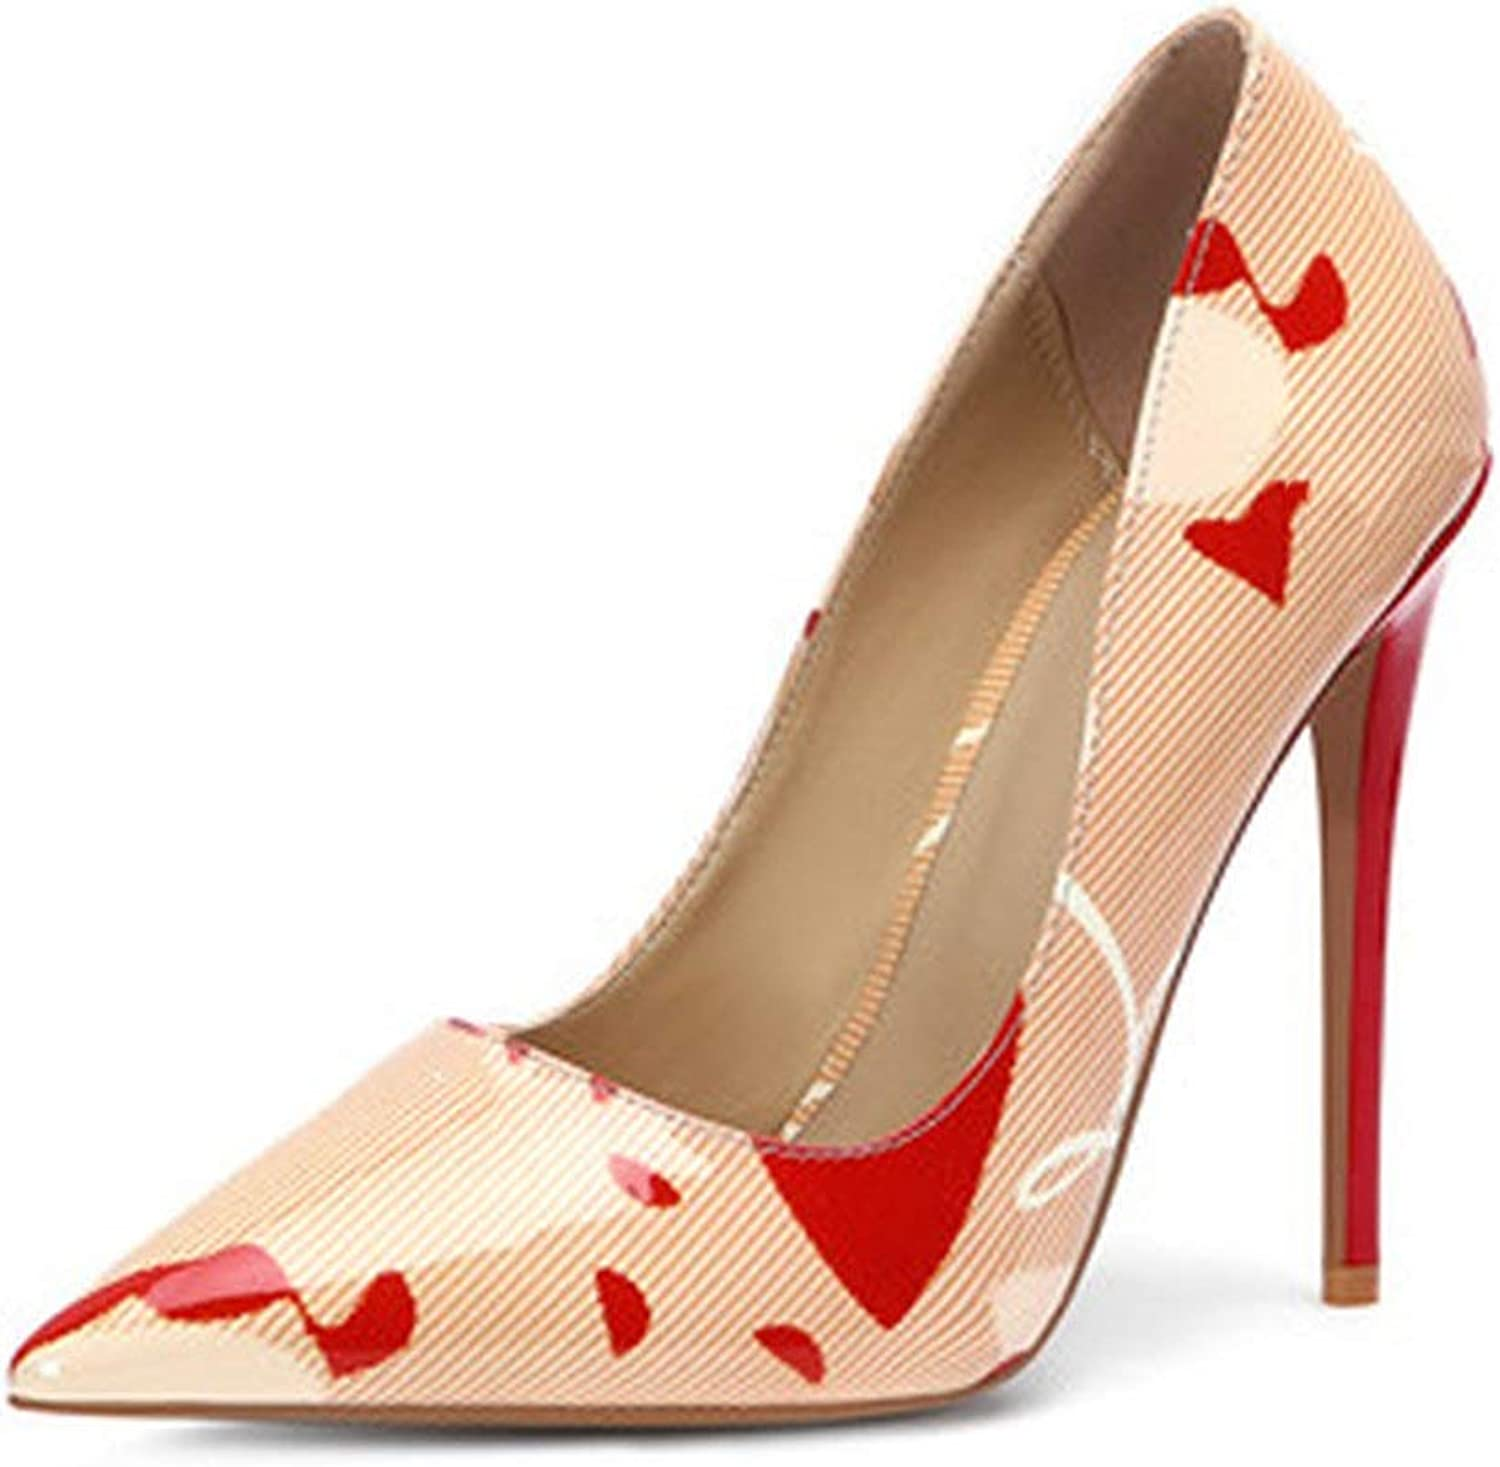 MiniYoo Sexy Lady Pumps Patent Leather Red High Heels Pointed Toe Sandals Luxury Womens shoes